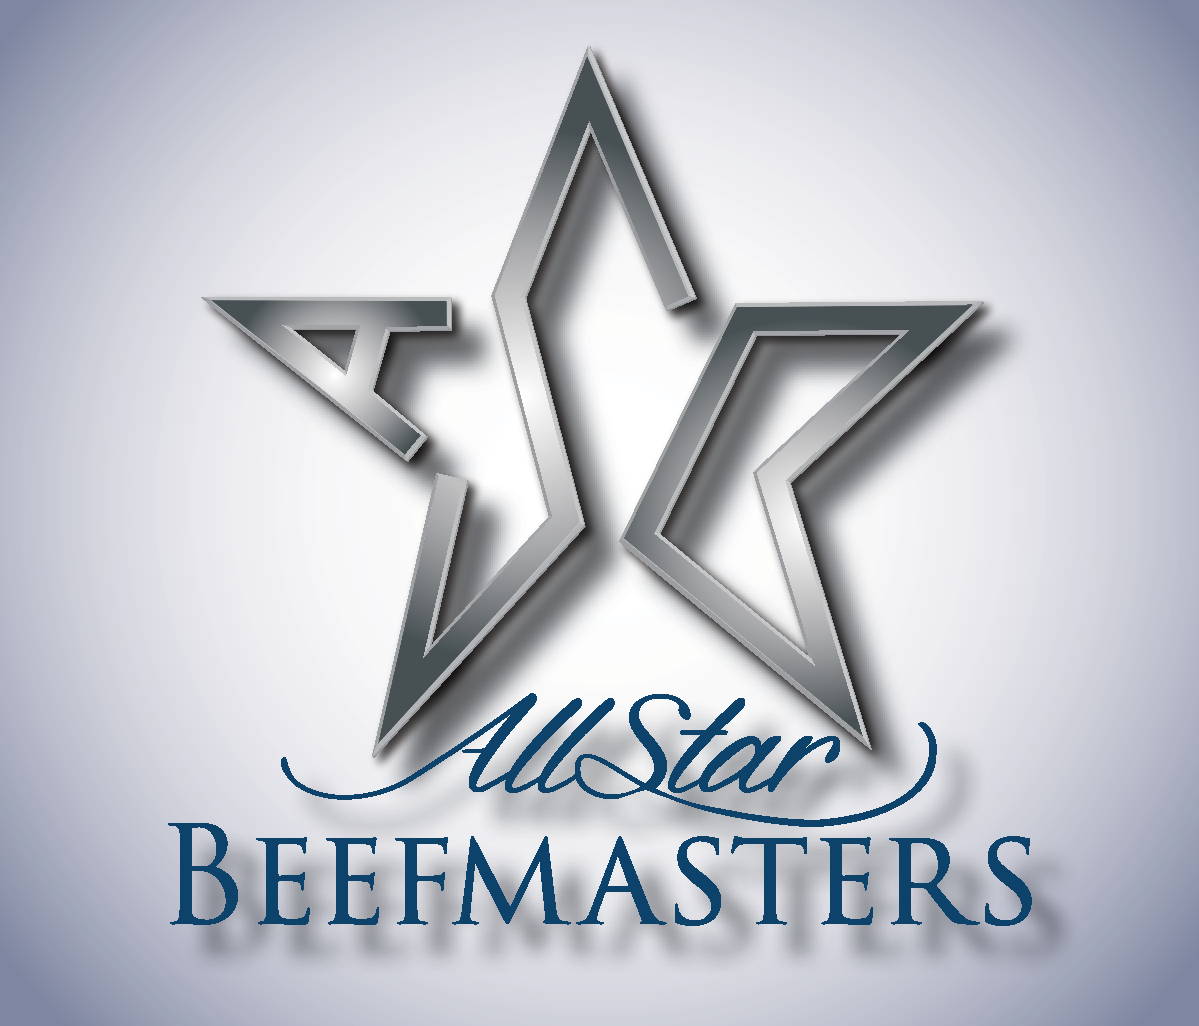 All Star Beefmasters